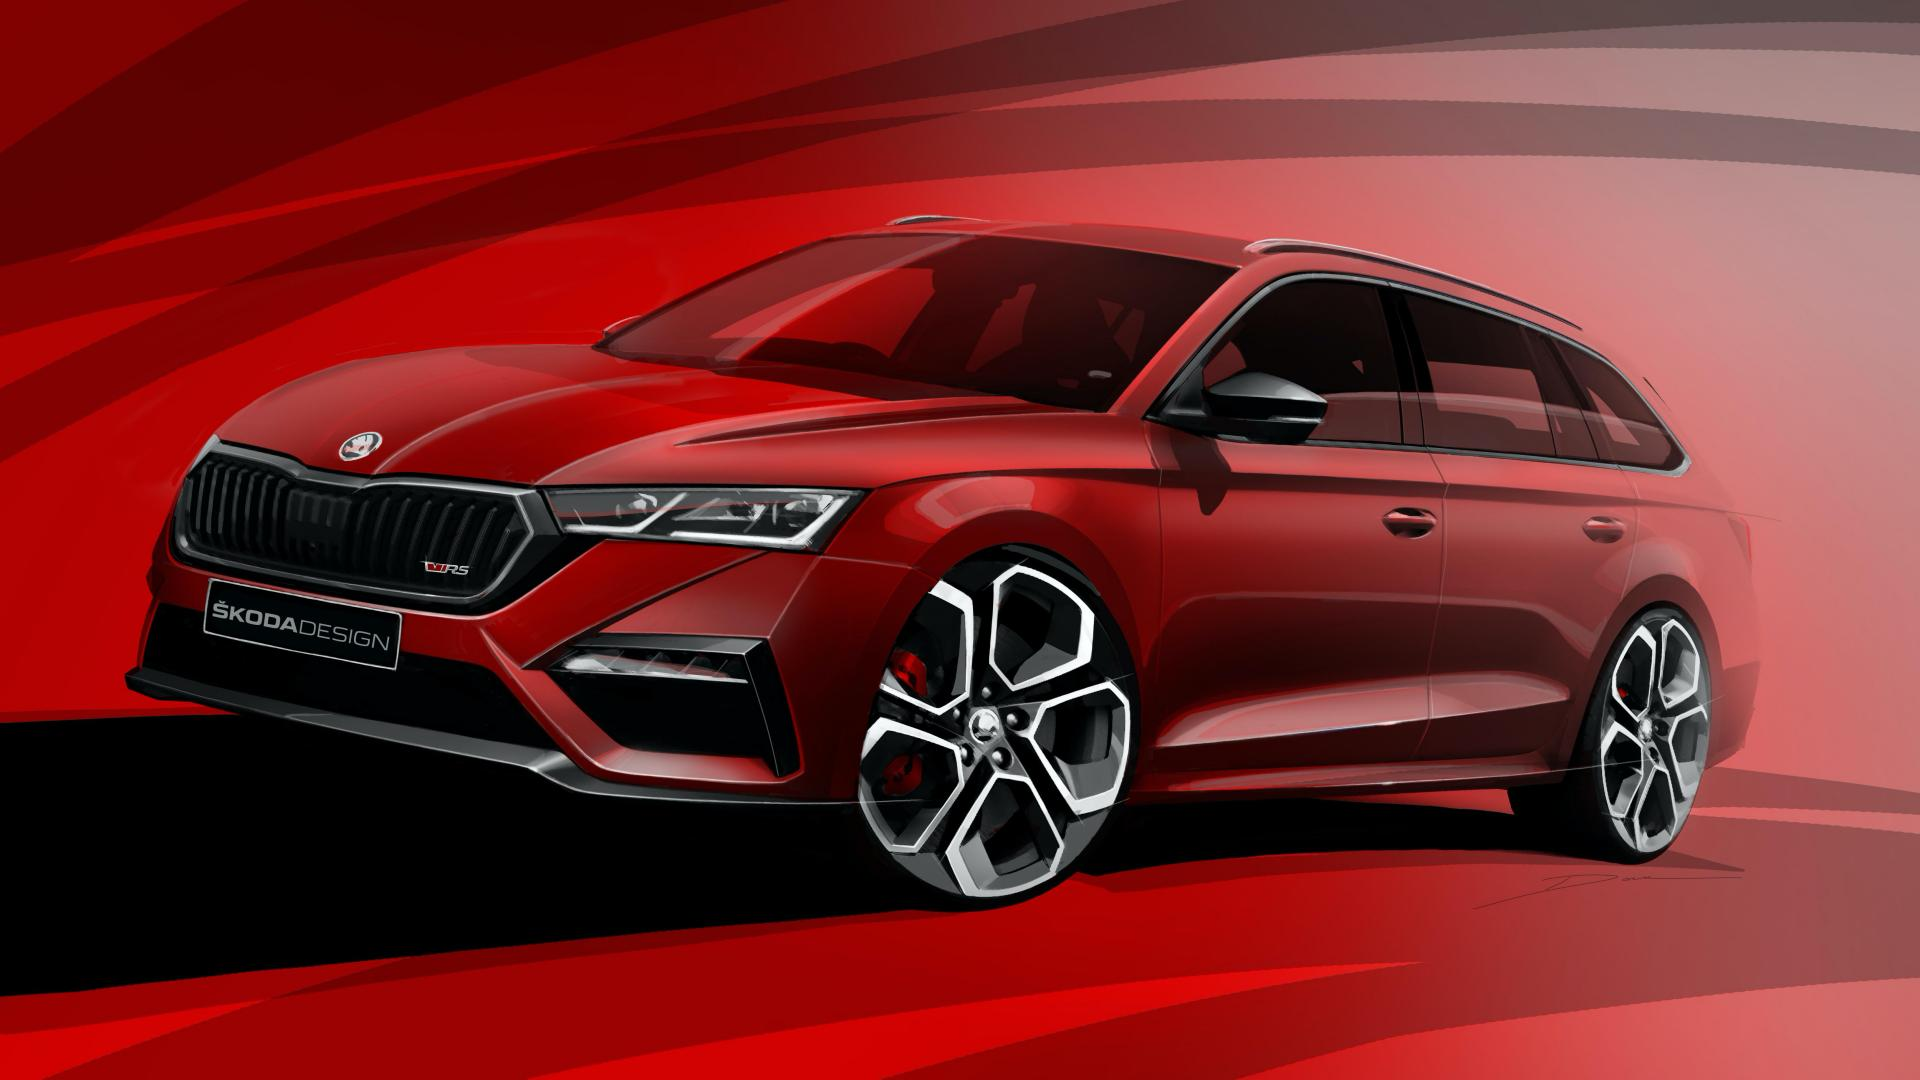 2020 Skoda Octavia Rs Iv Officially Previewed In Design Sketches Carscoops